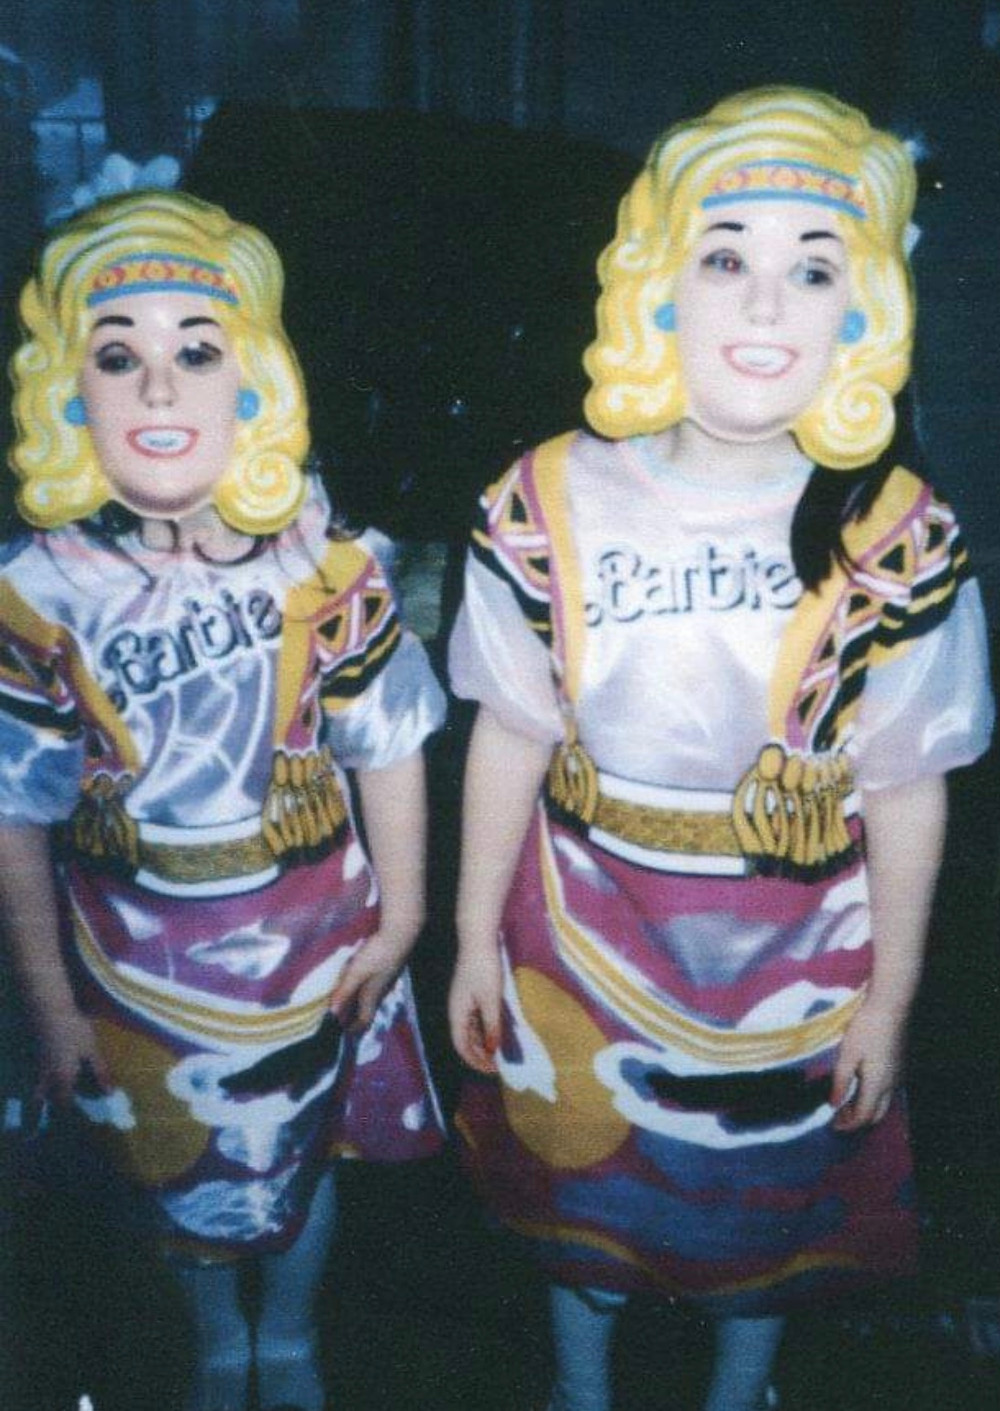 Two young girls in Barbie costumes.